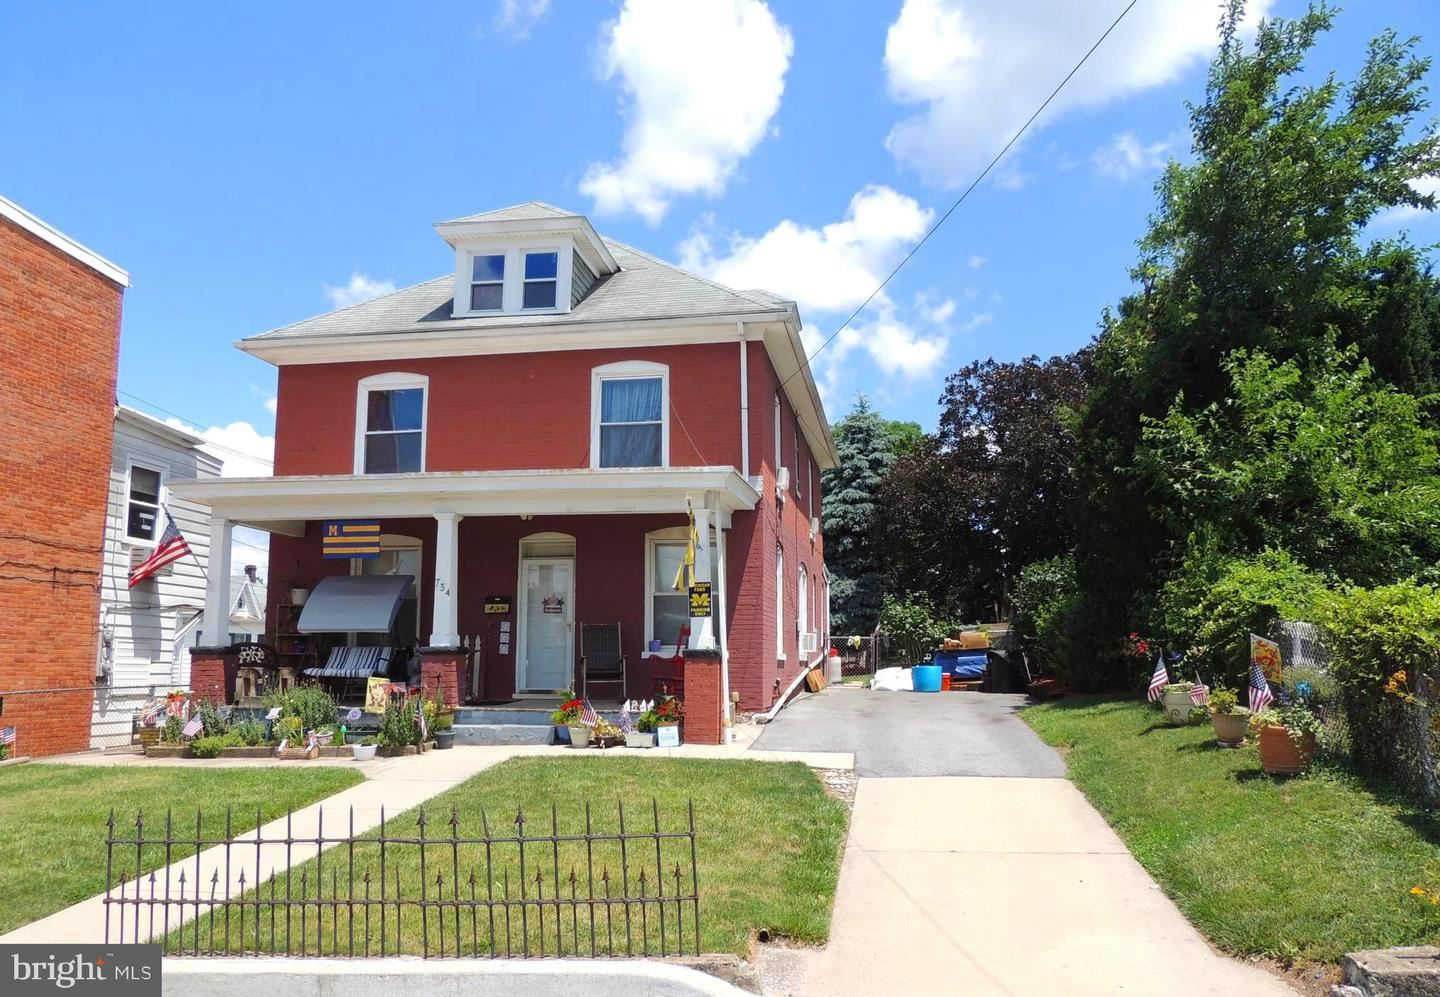 Photo of 734 FRANKLIN, HAGERSTOWN, MD 21740 (MLS # MDWA180534)